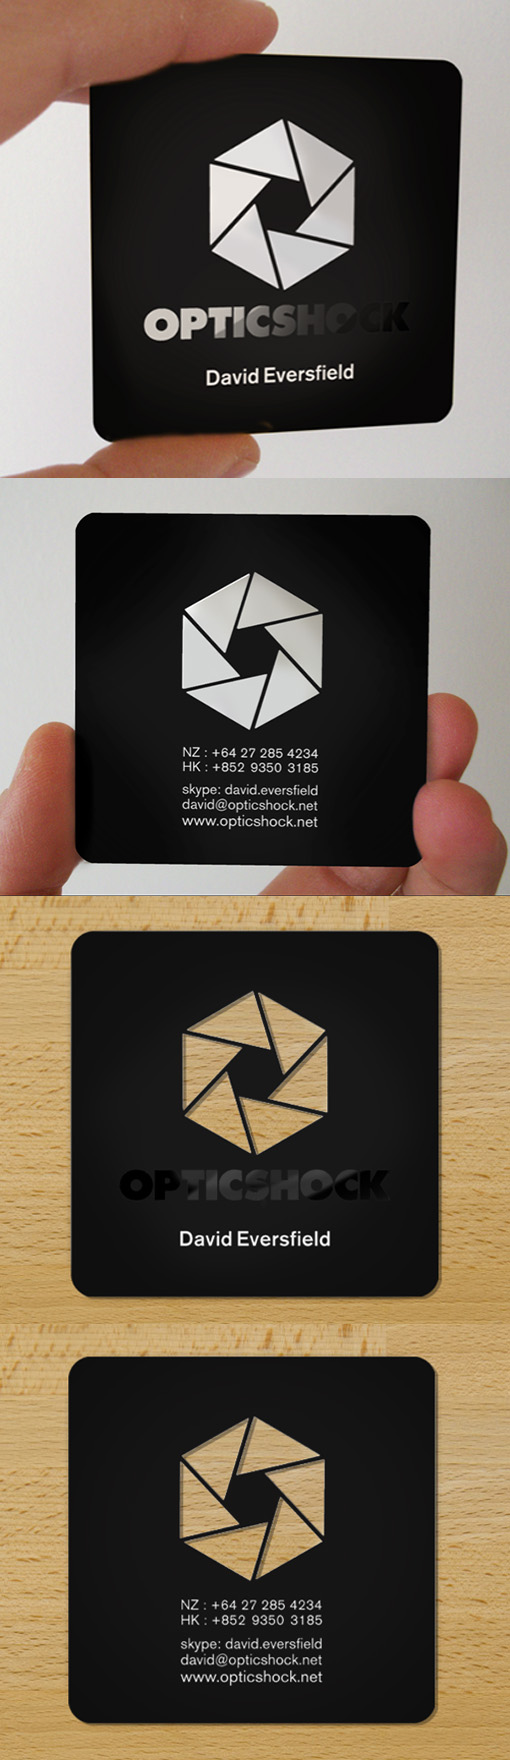 Slick laser cut black plastic business card design graphic design slick laser cut black plastic business card design colourmoves